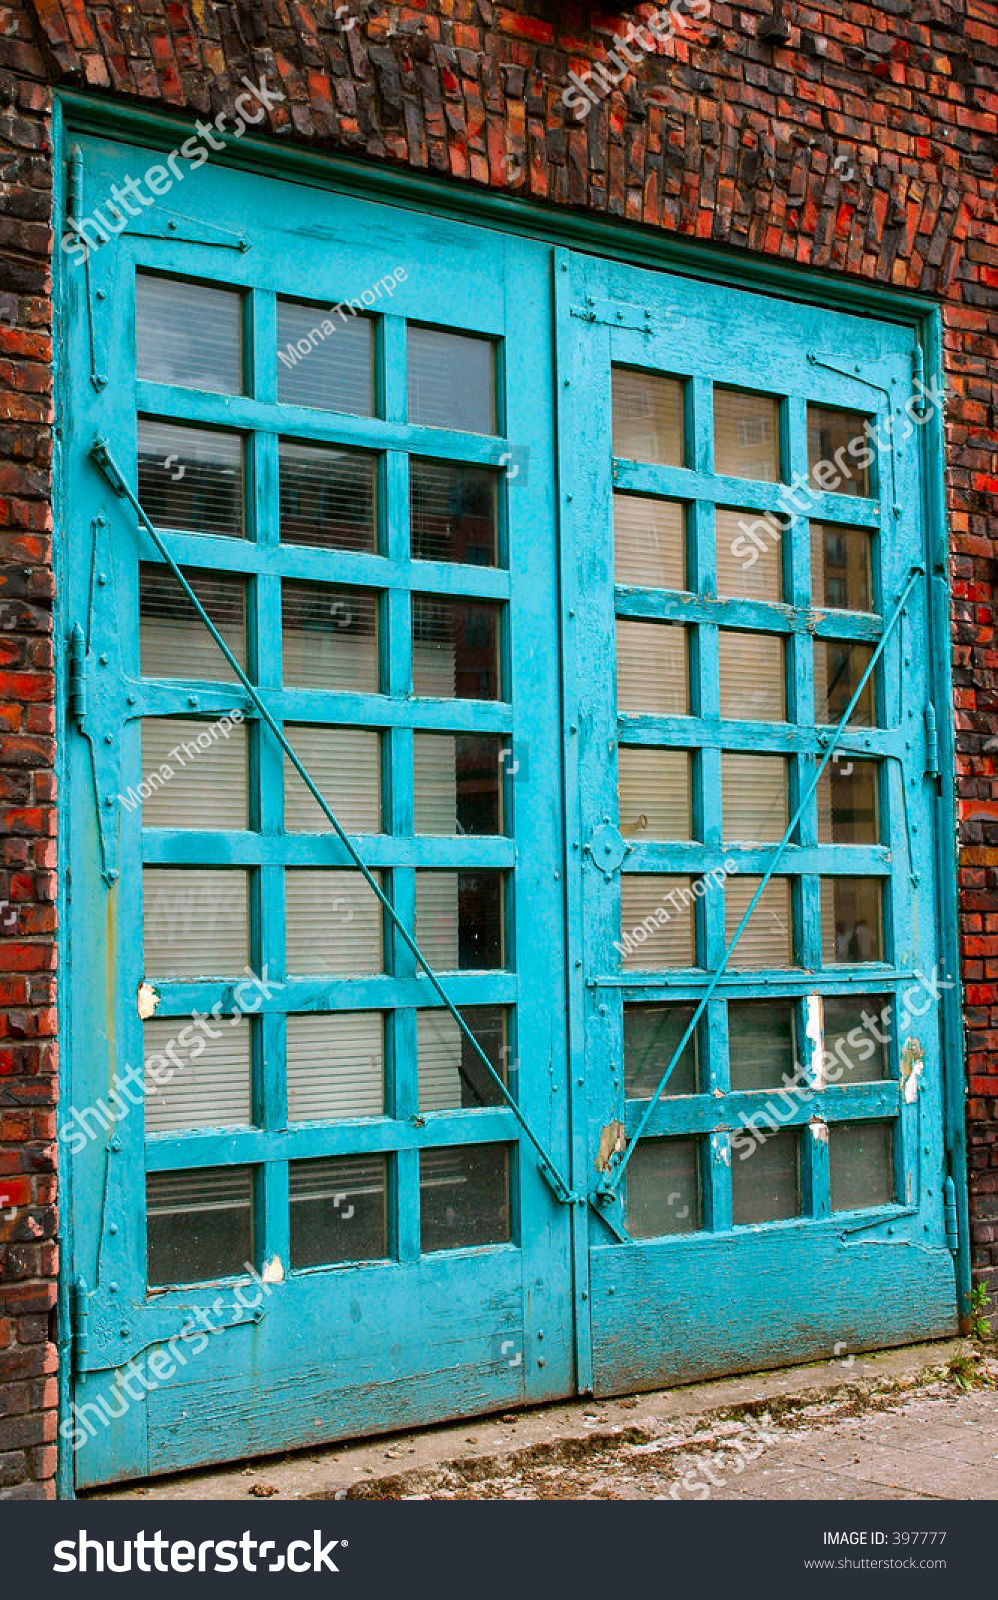 Bay Doors On Old Fire Station Stock Photo 397777 - Shutterstock